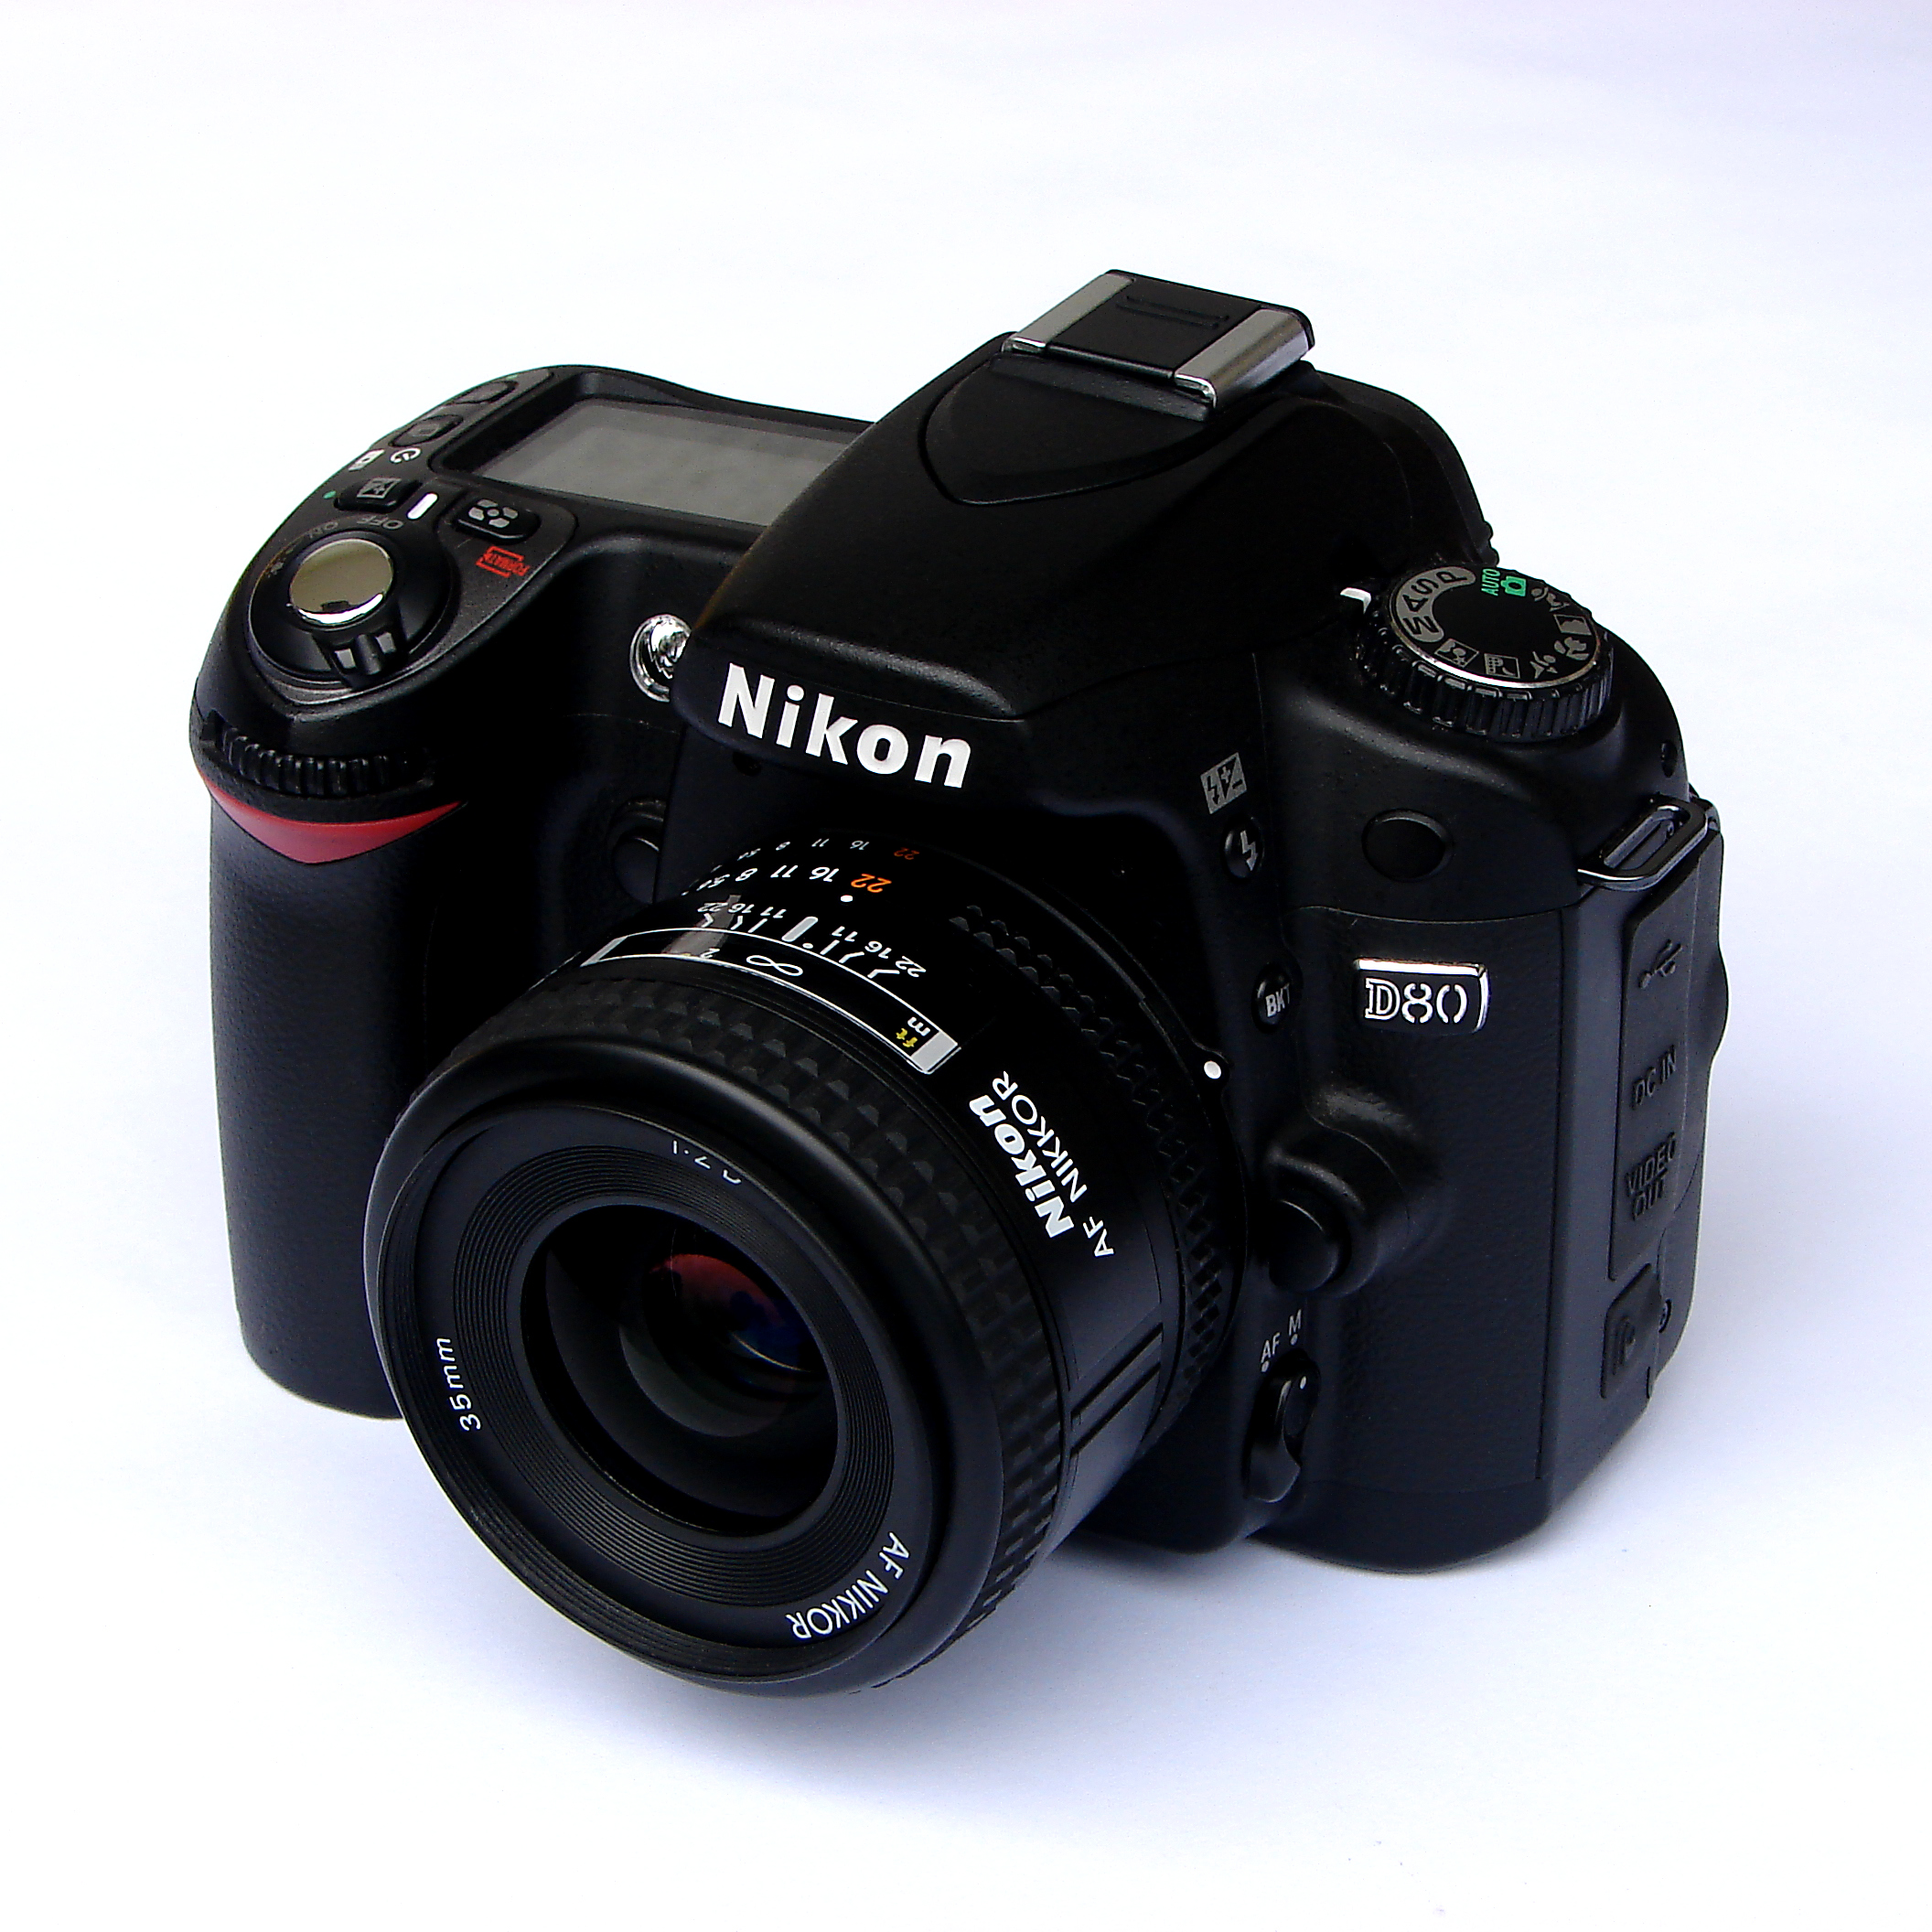 File:Nikon d80 with 35...